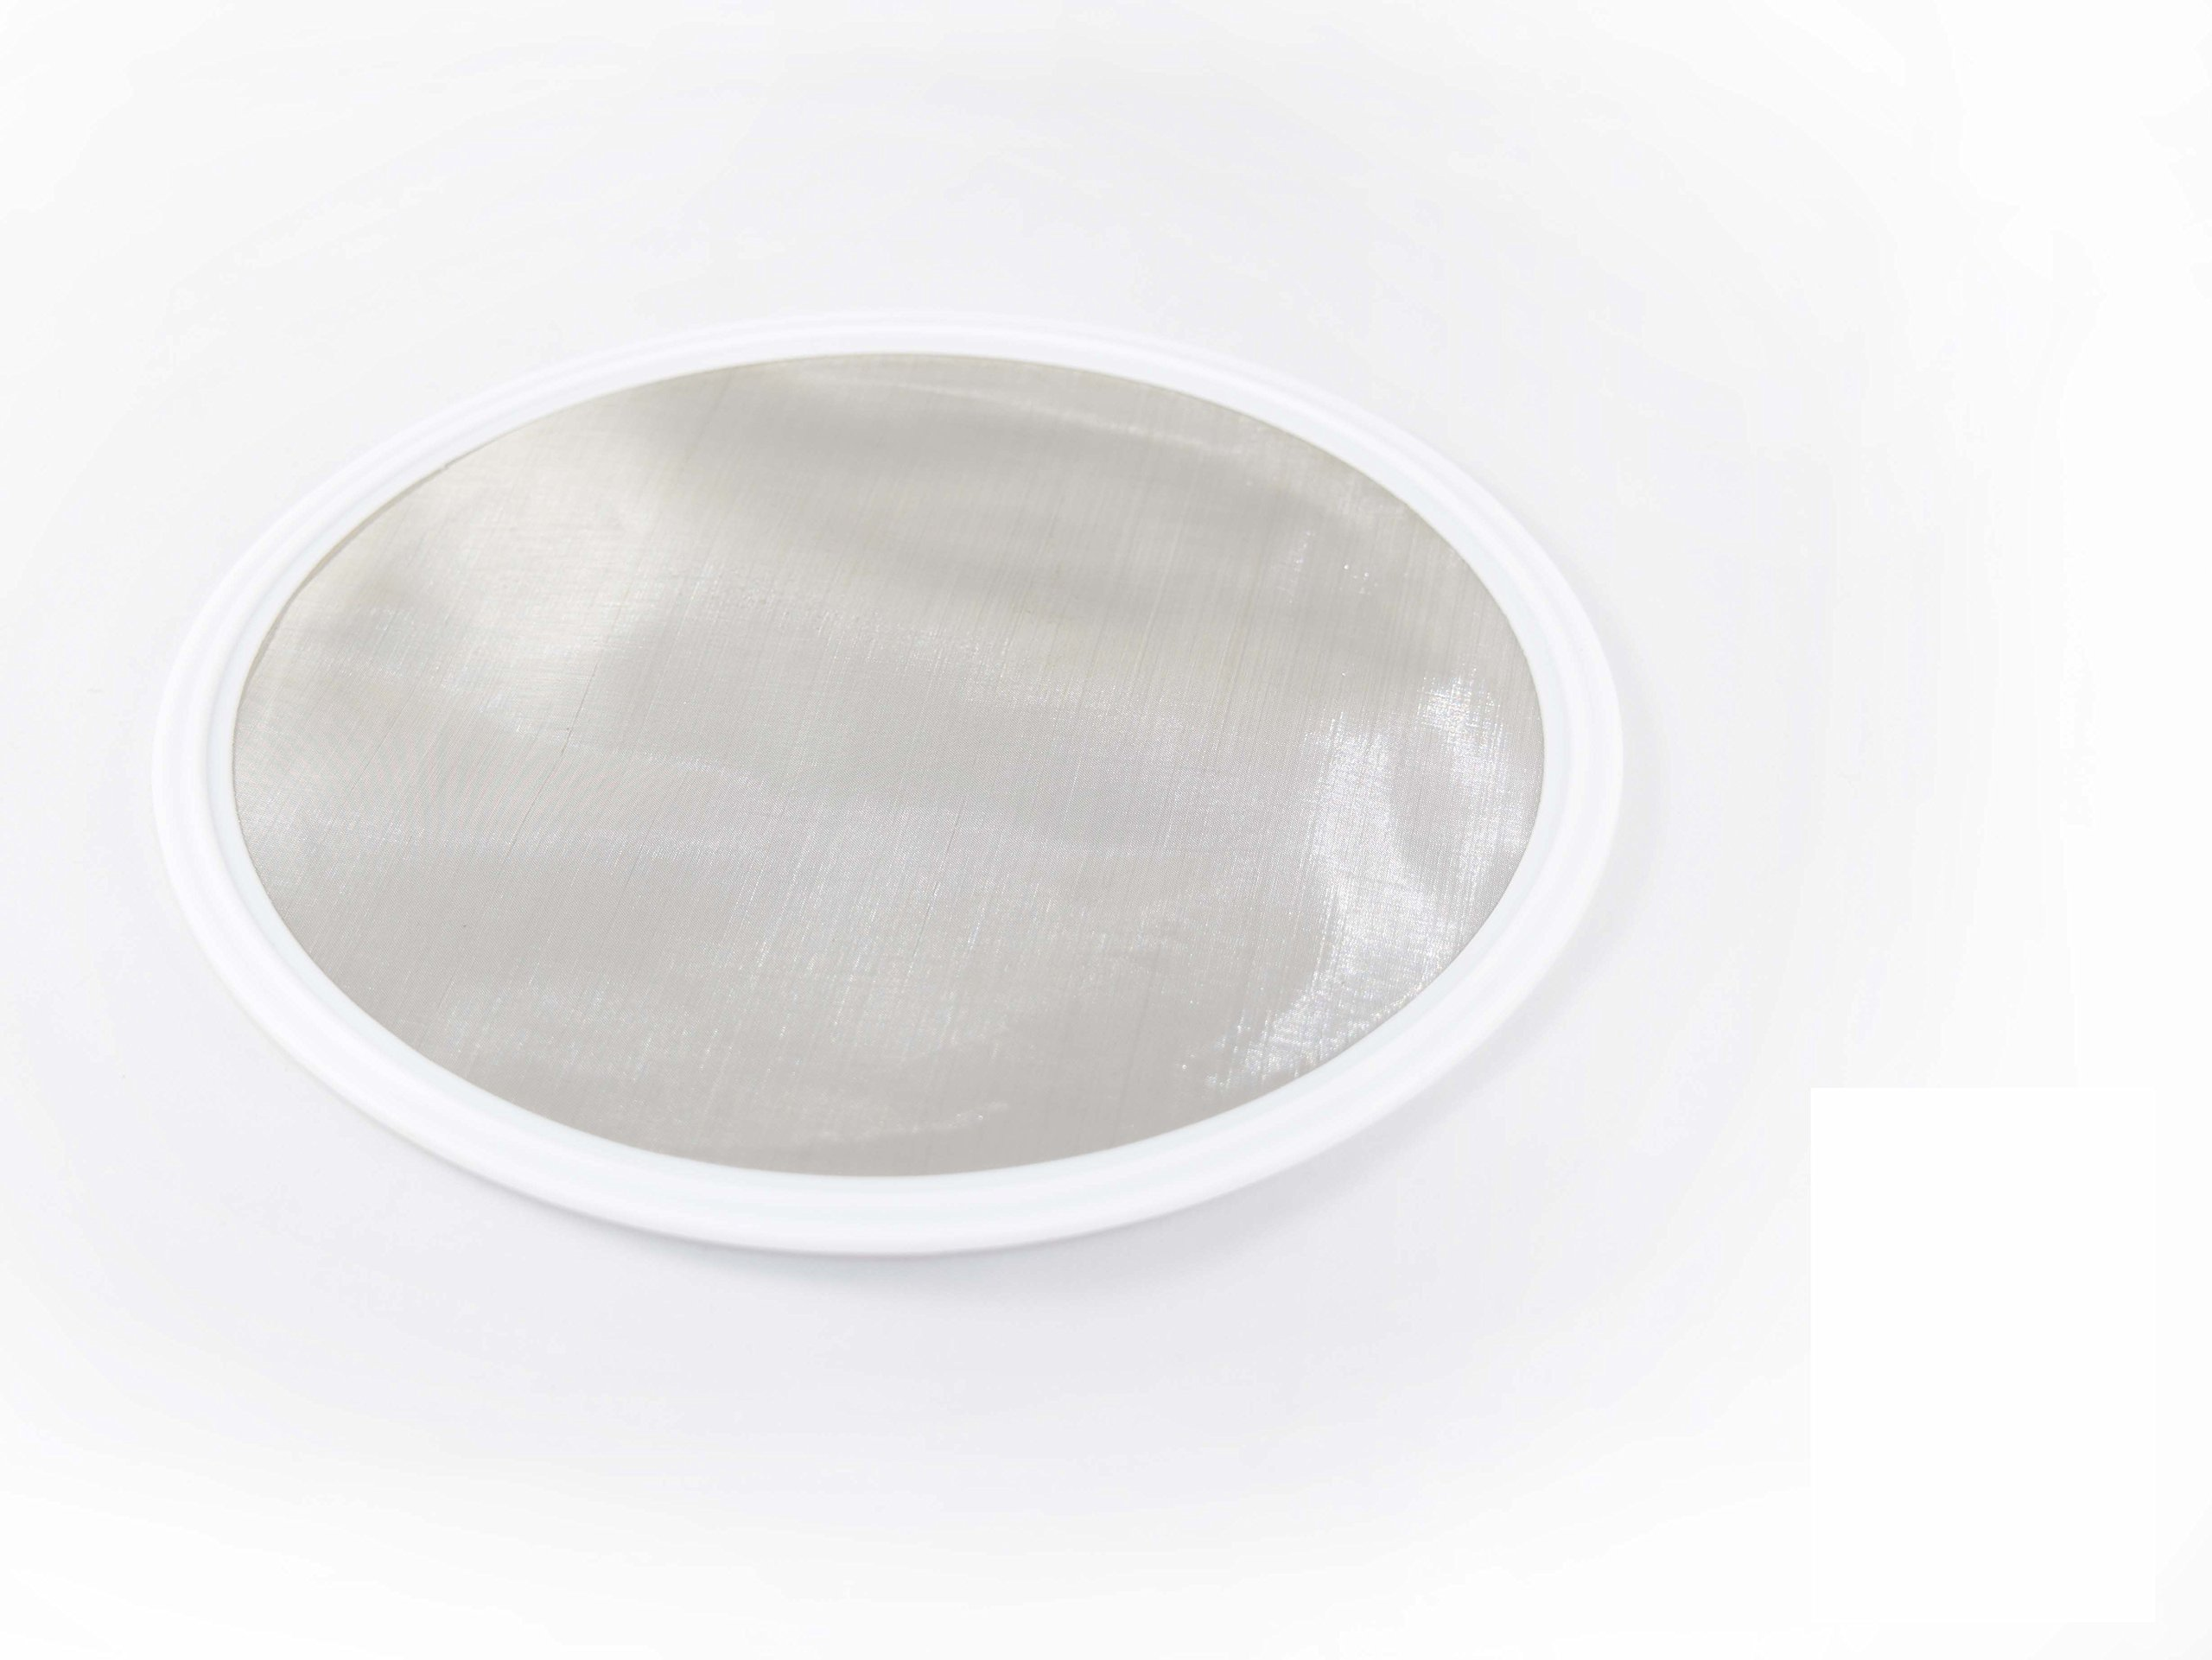 6'' Tri Clamp (Teflon) PTFE Screen Filter Gasket 316L 100Uf Micron Screen Stainless Steel Pharmaceutical Grade Filter Mesh. PTFE Inverted Envelope With Floating Stainless Mesh! With FDA Certification by ARTESIAN SYSTEMS